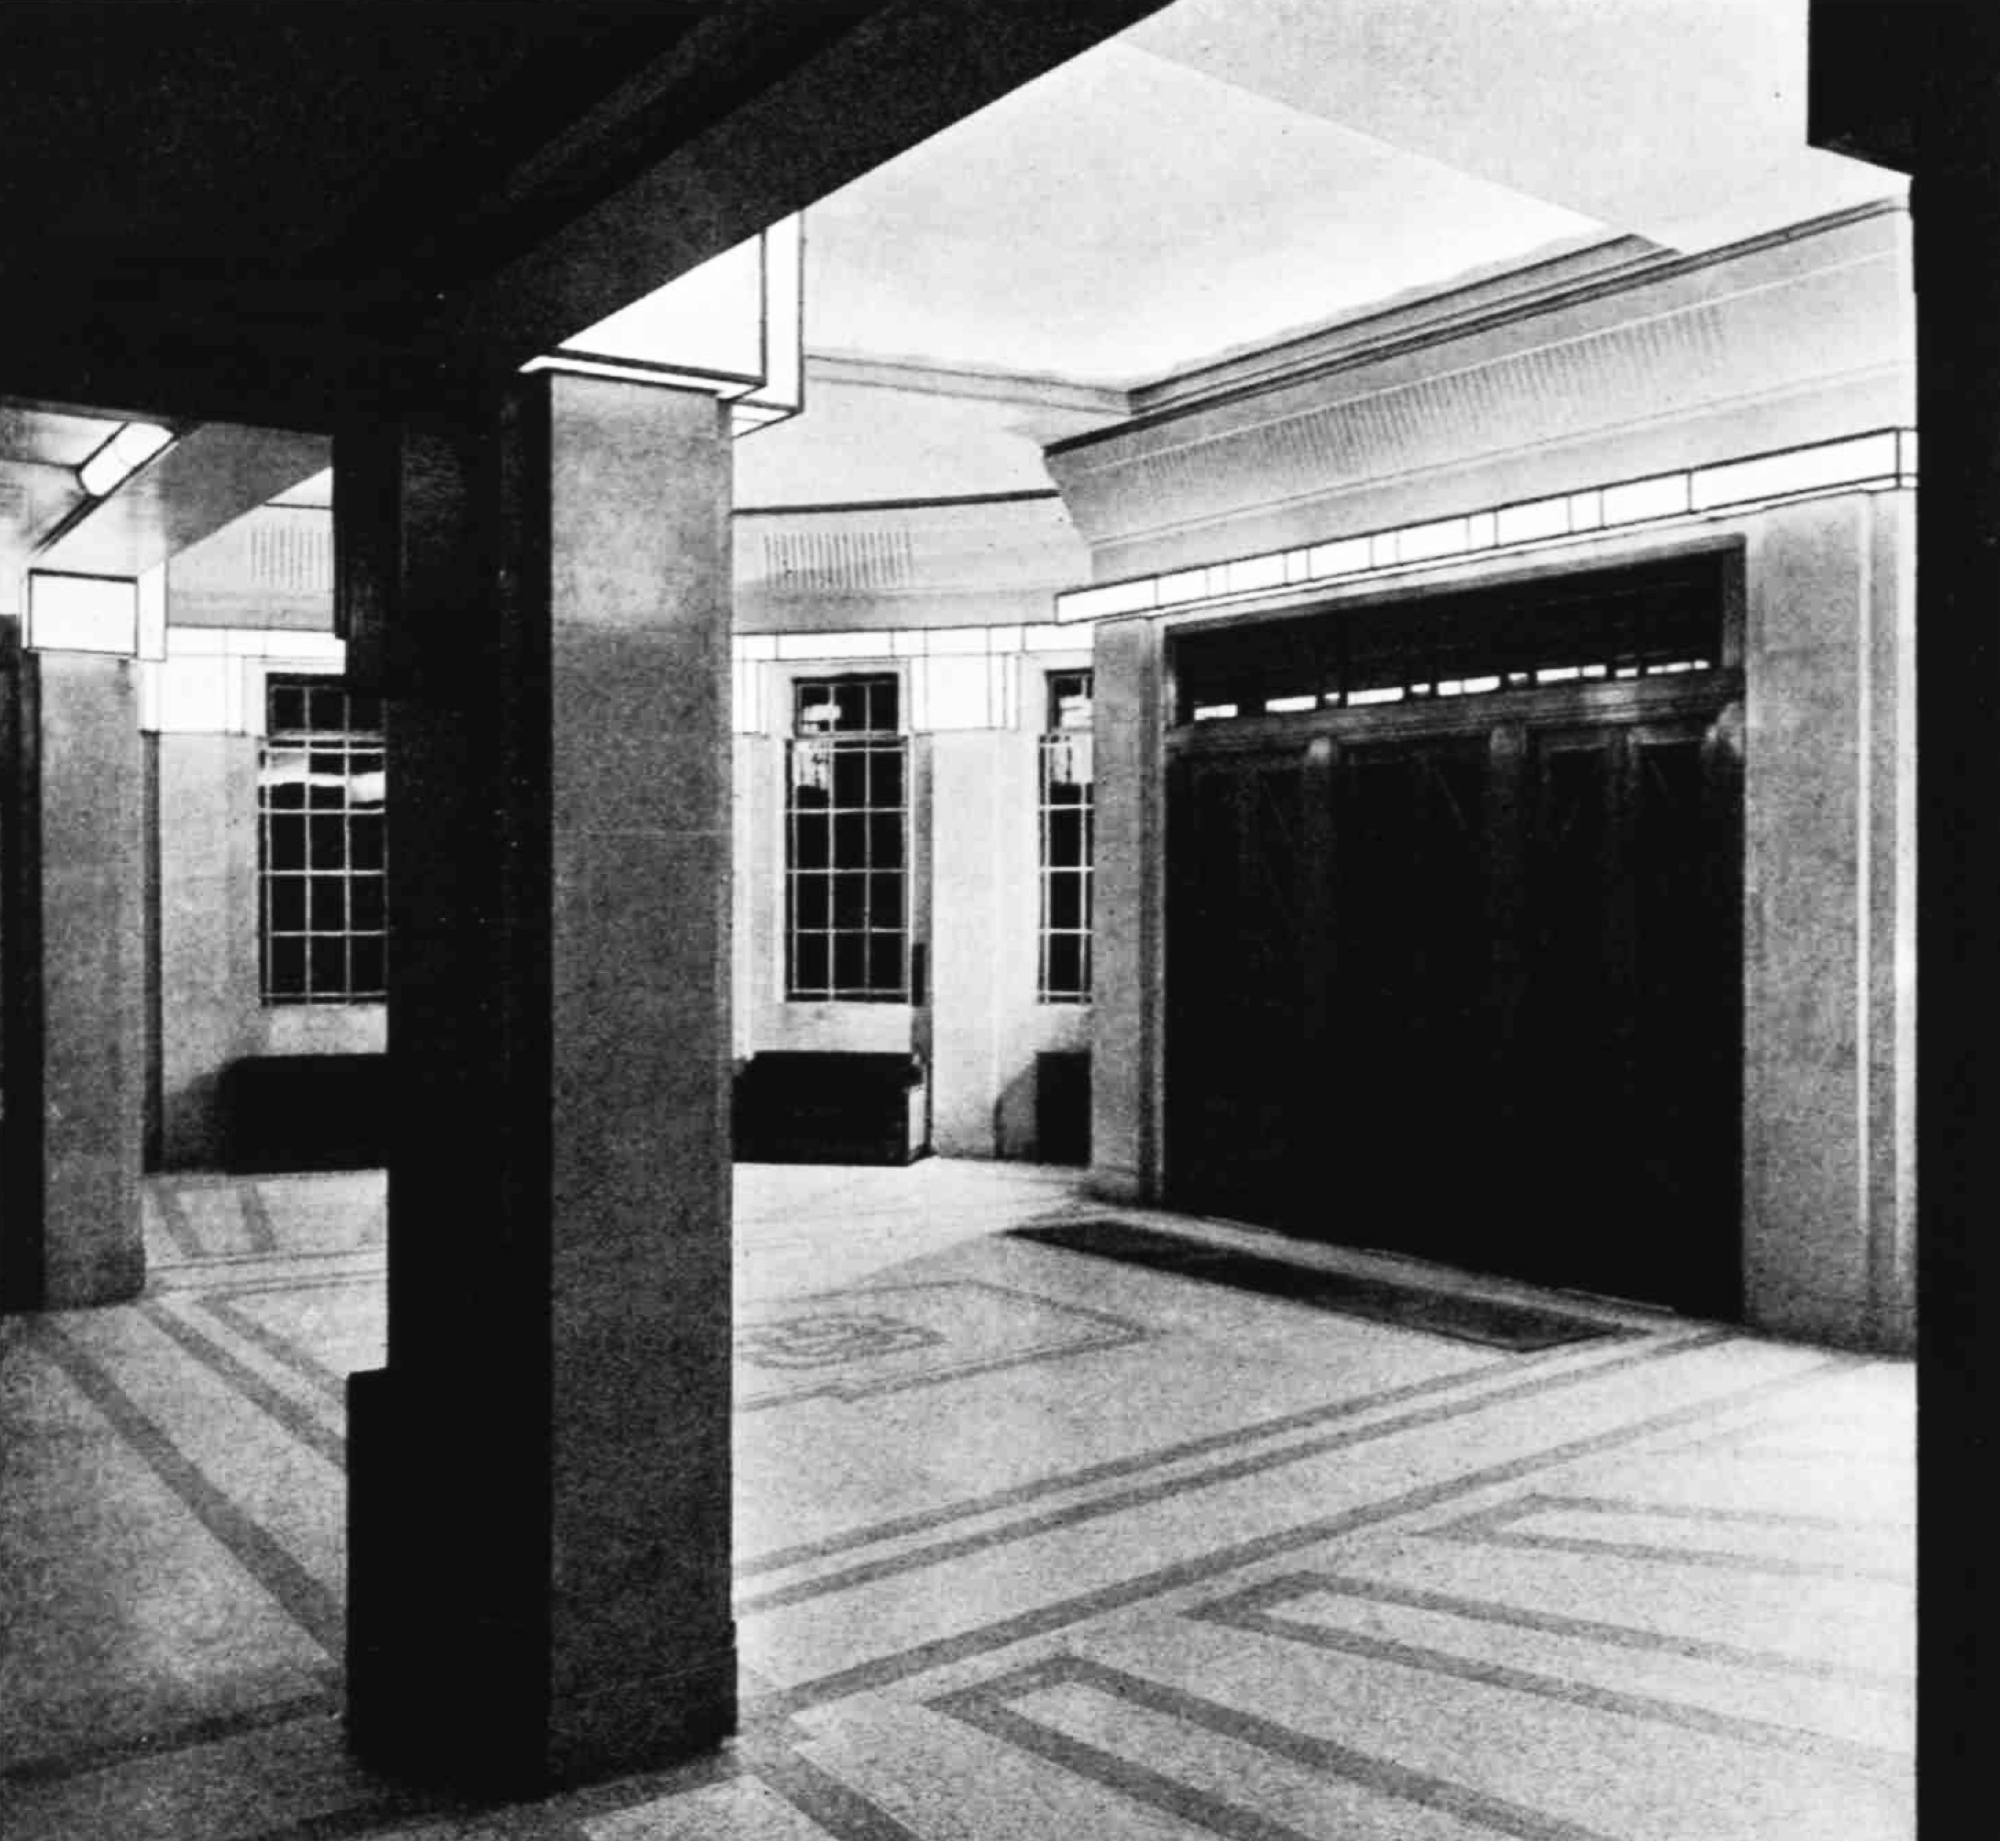 A wide space with square pillars and a mosaic floor